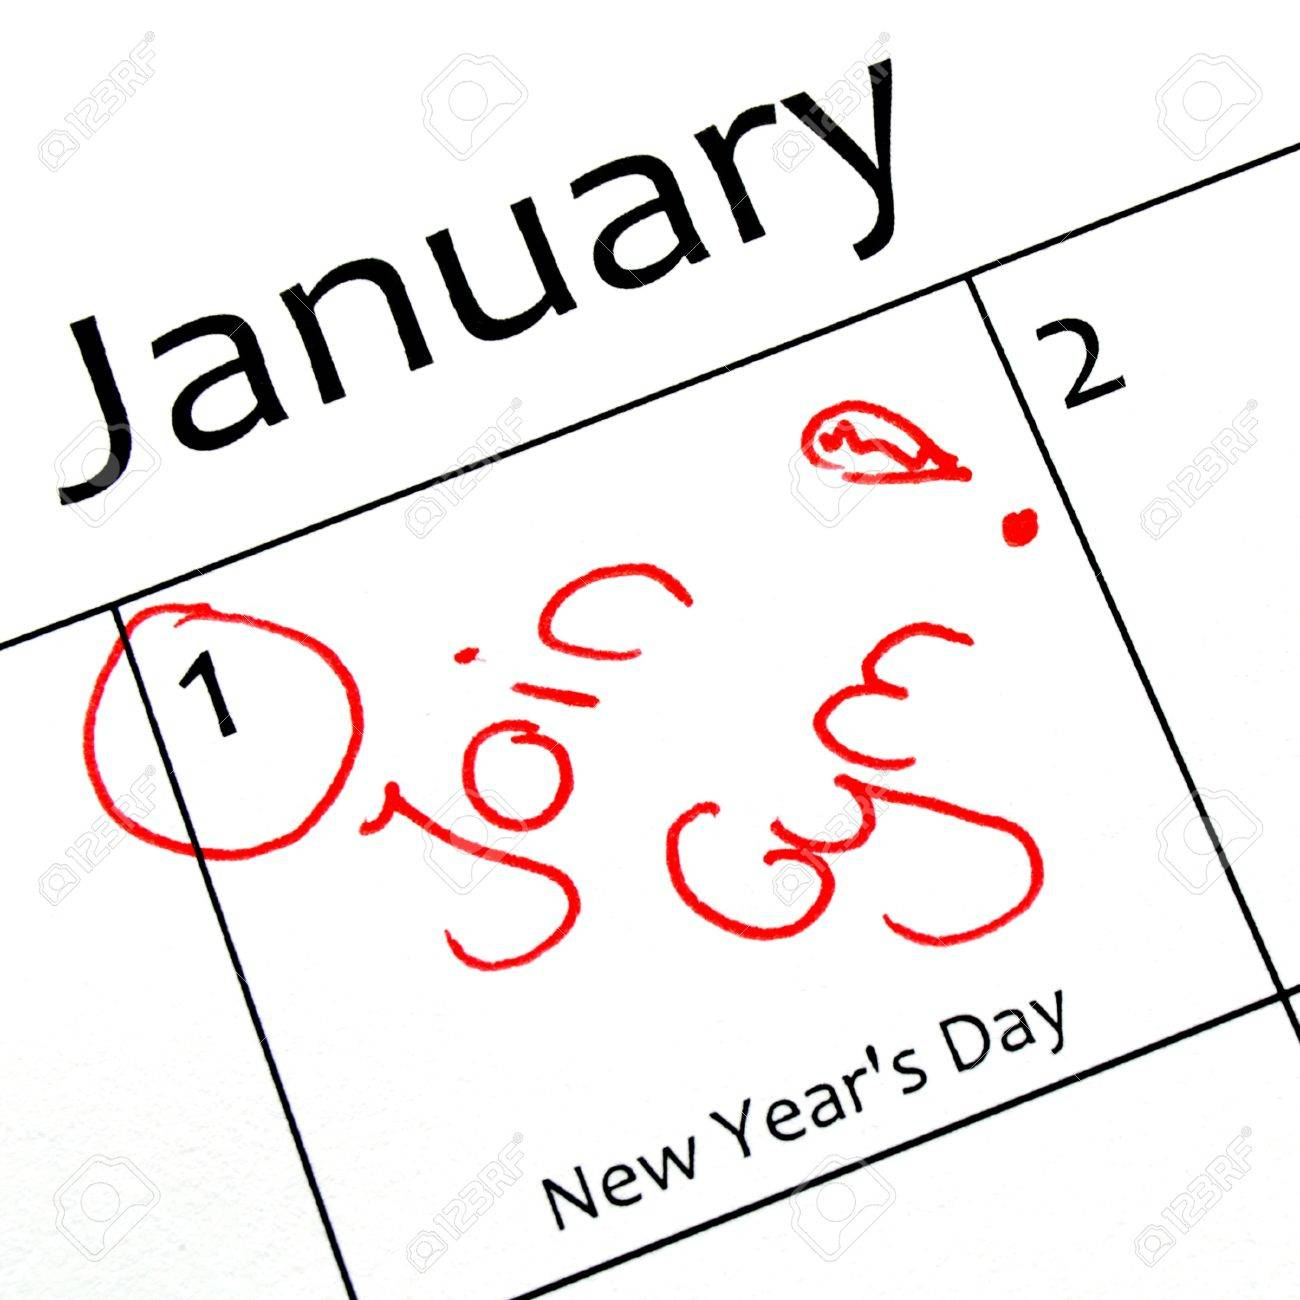 calendar marking the start of a new year resolution in red letter Stock Photo - 11148278